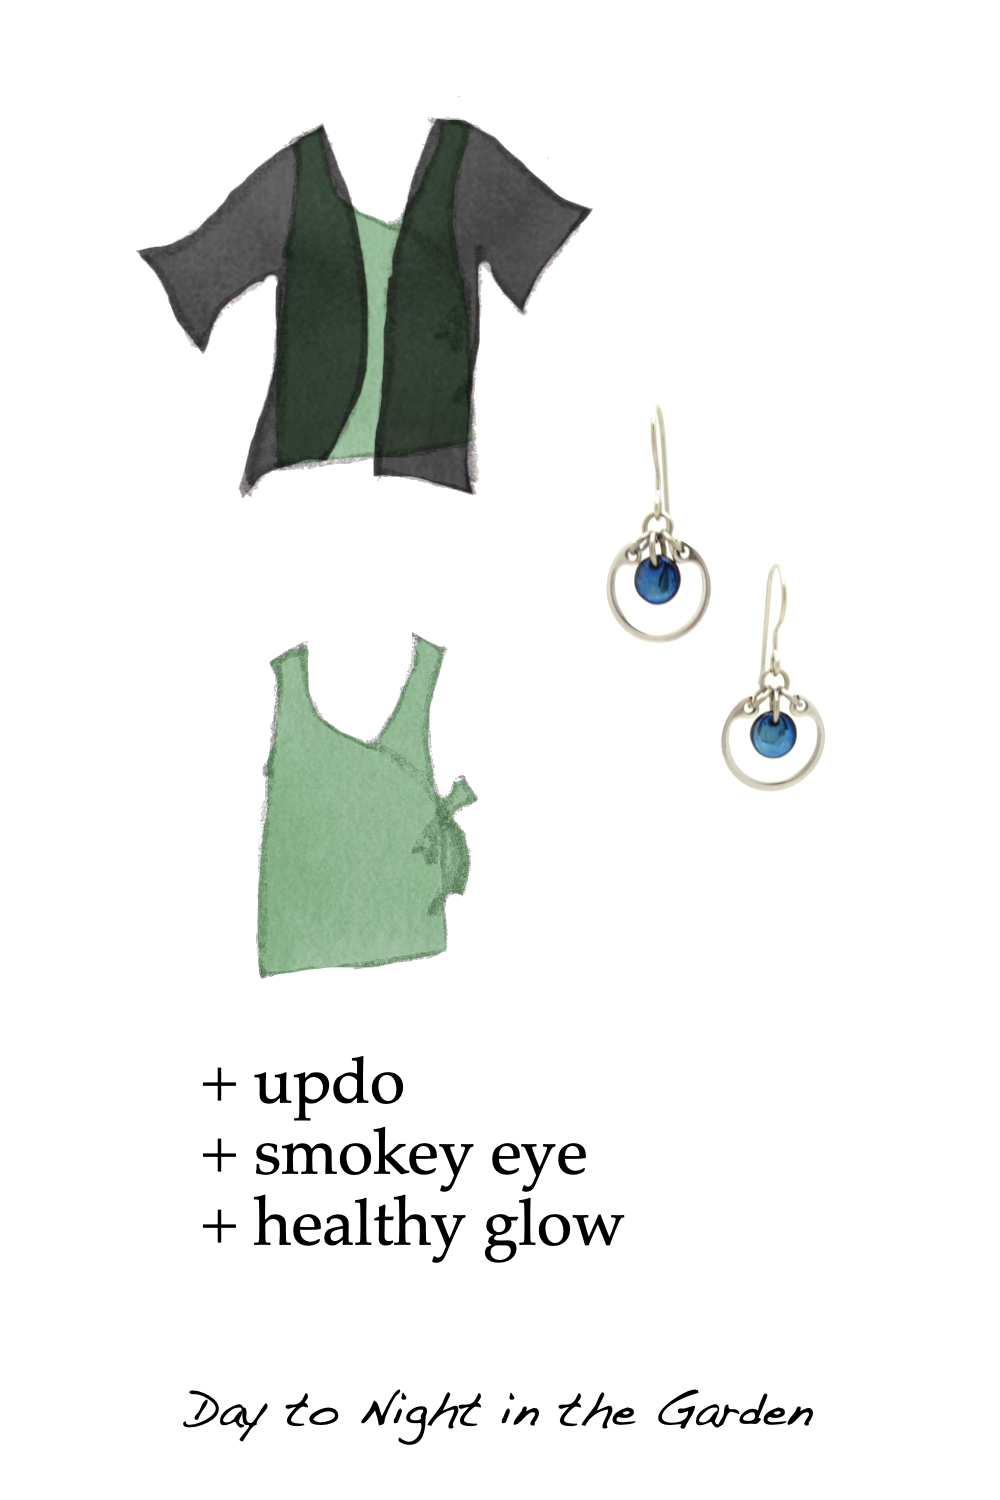 Style sketches of a pale green sleeveless wrap top, shown with and without a lightweight black cardigan, combined with a photo of Wraptillion's small modern circle earrings in navy blue. Text on image reads: + updo + smokey eye + healthy glow; Day to Night in the Garden..